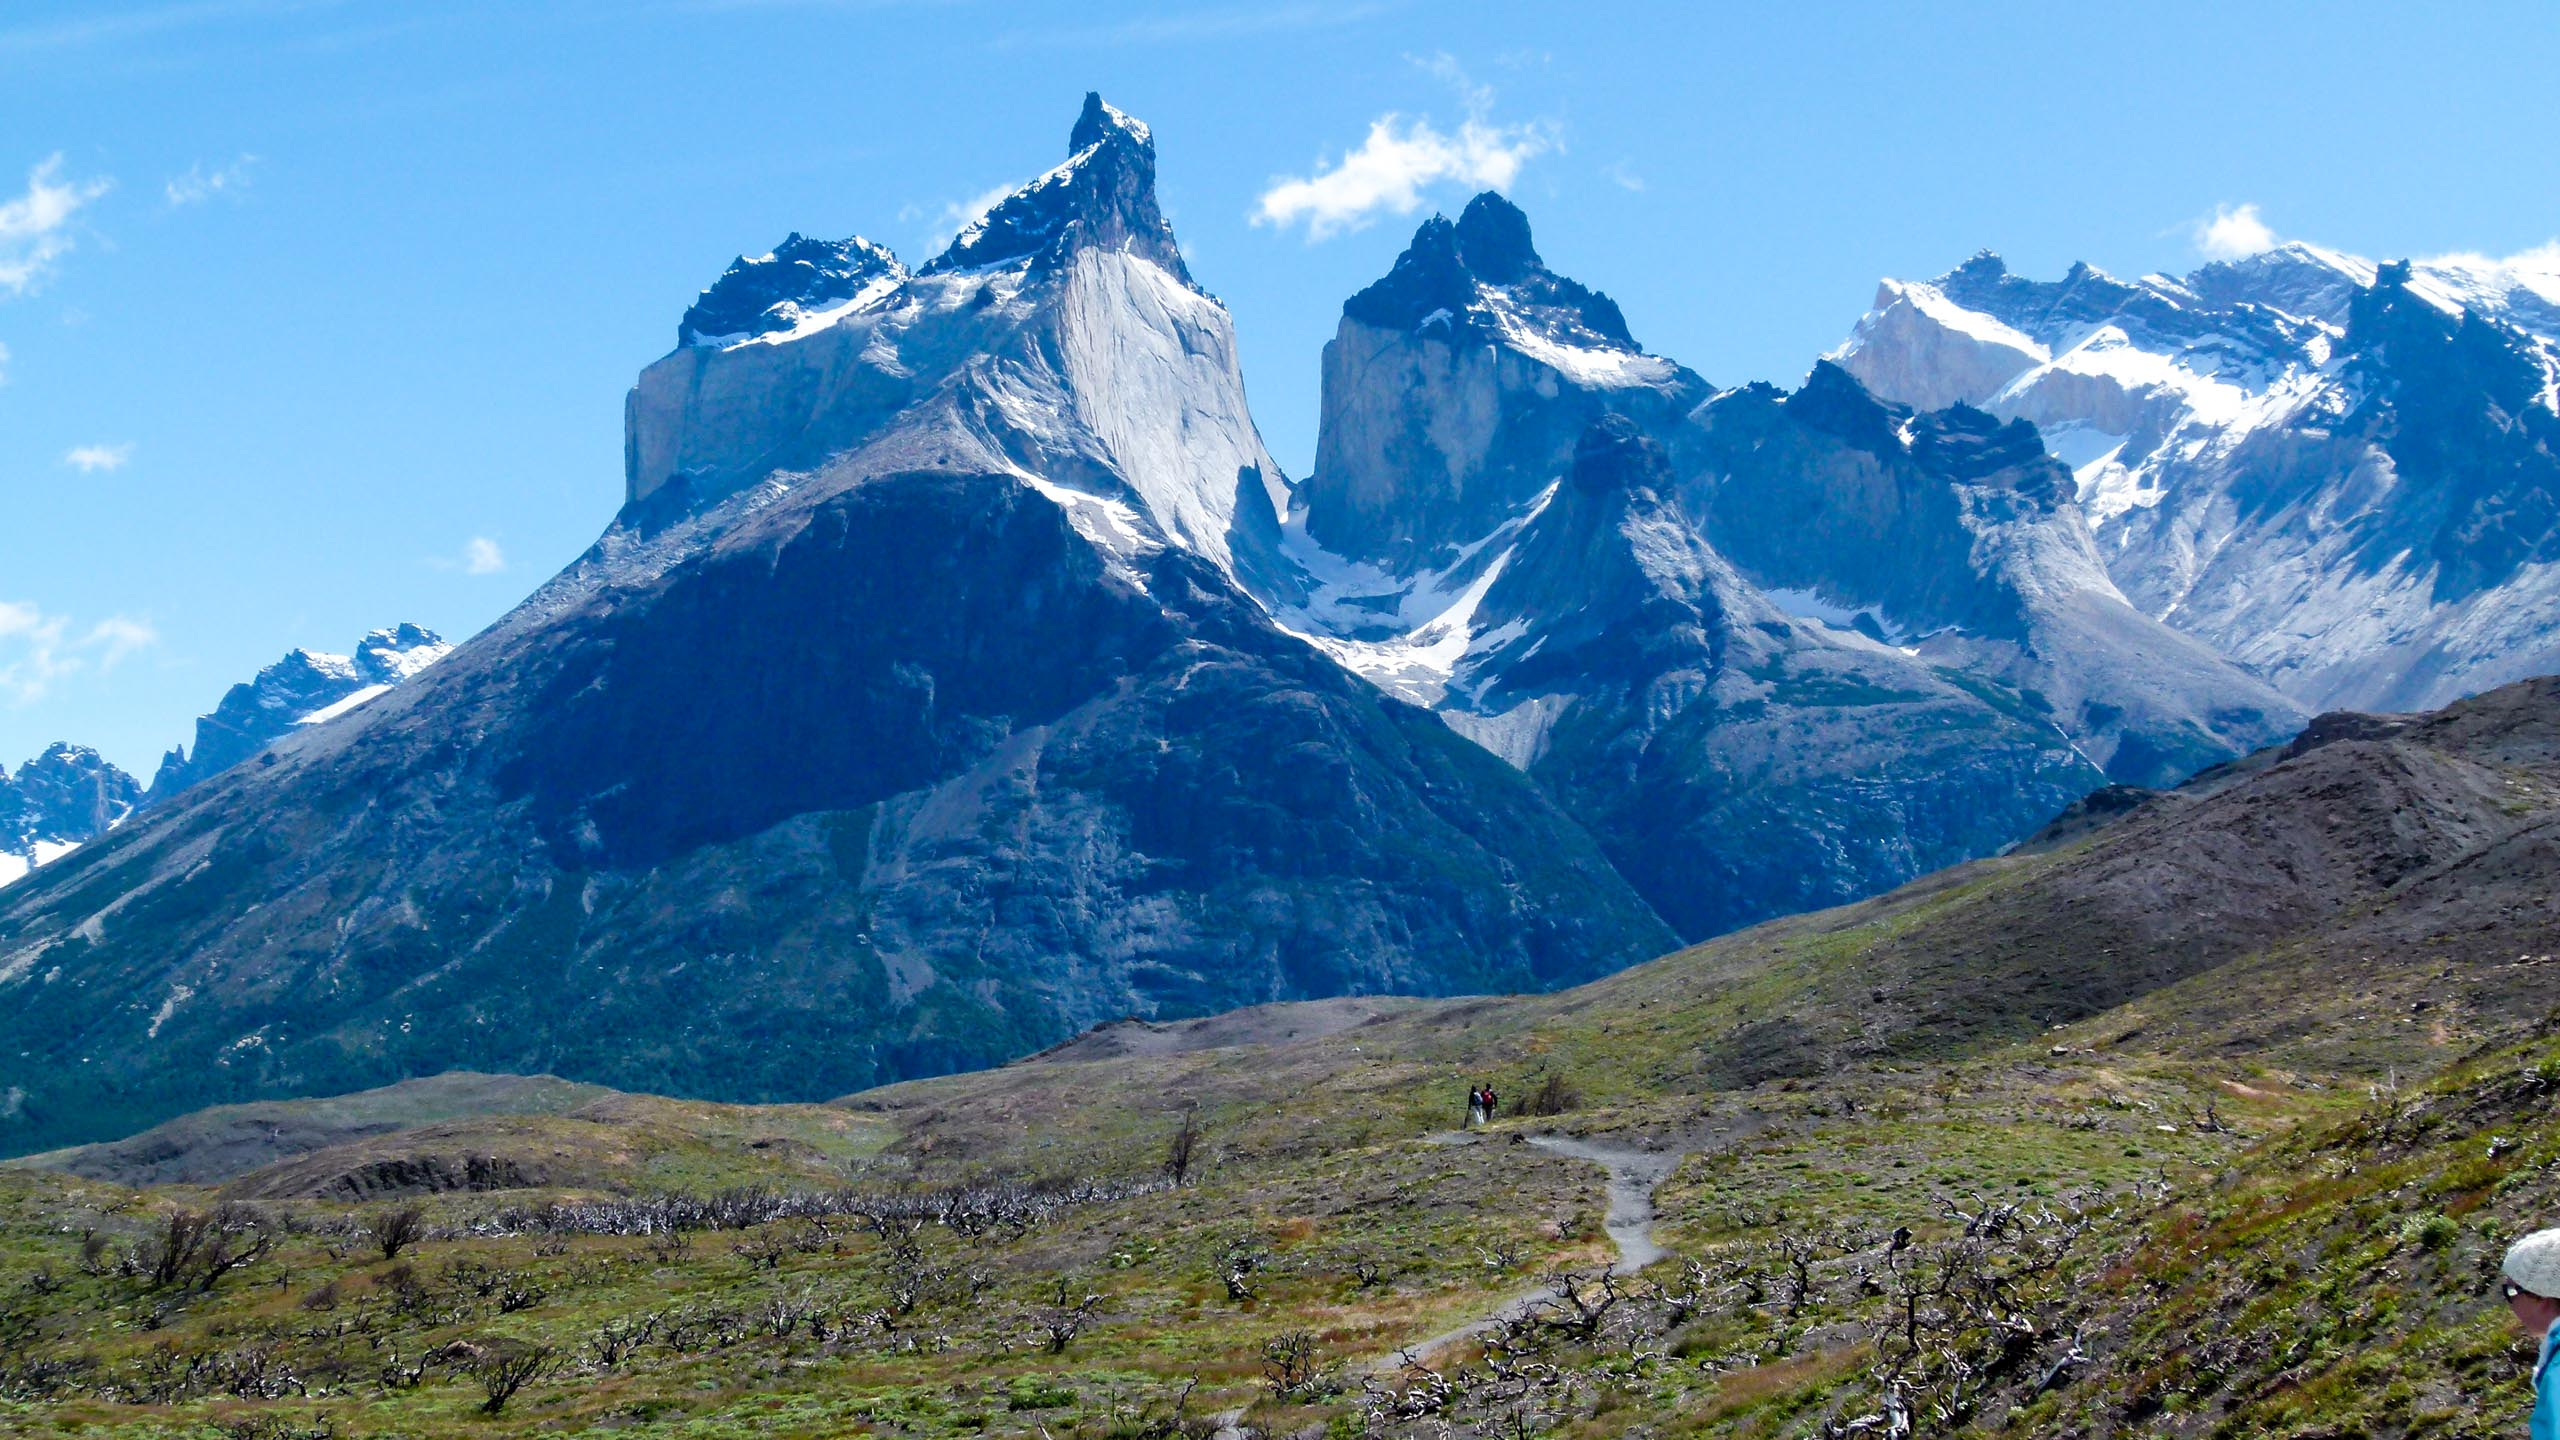 Spiky Patagonia mountain peaks in Chile